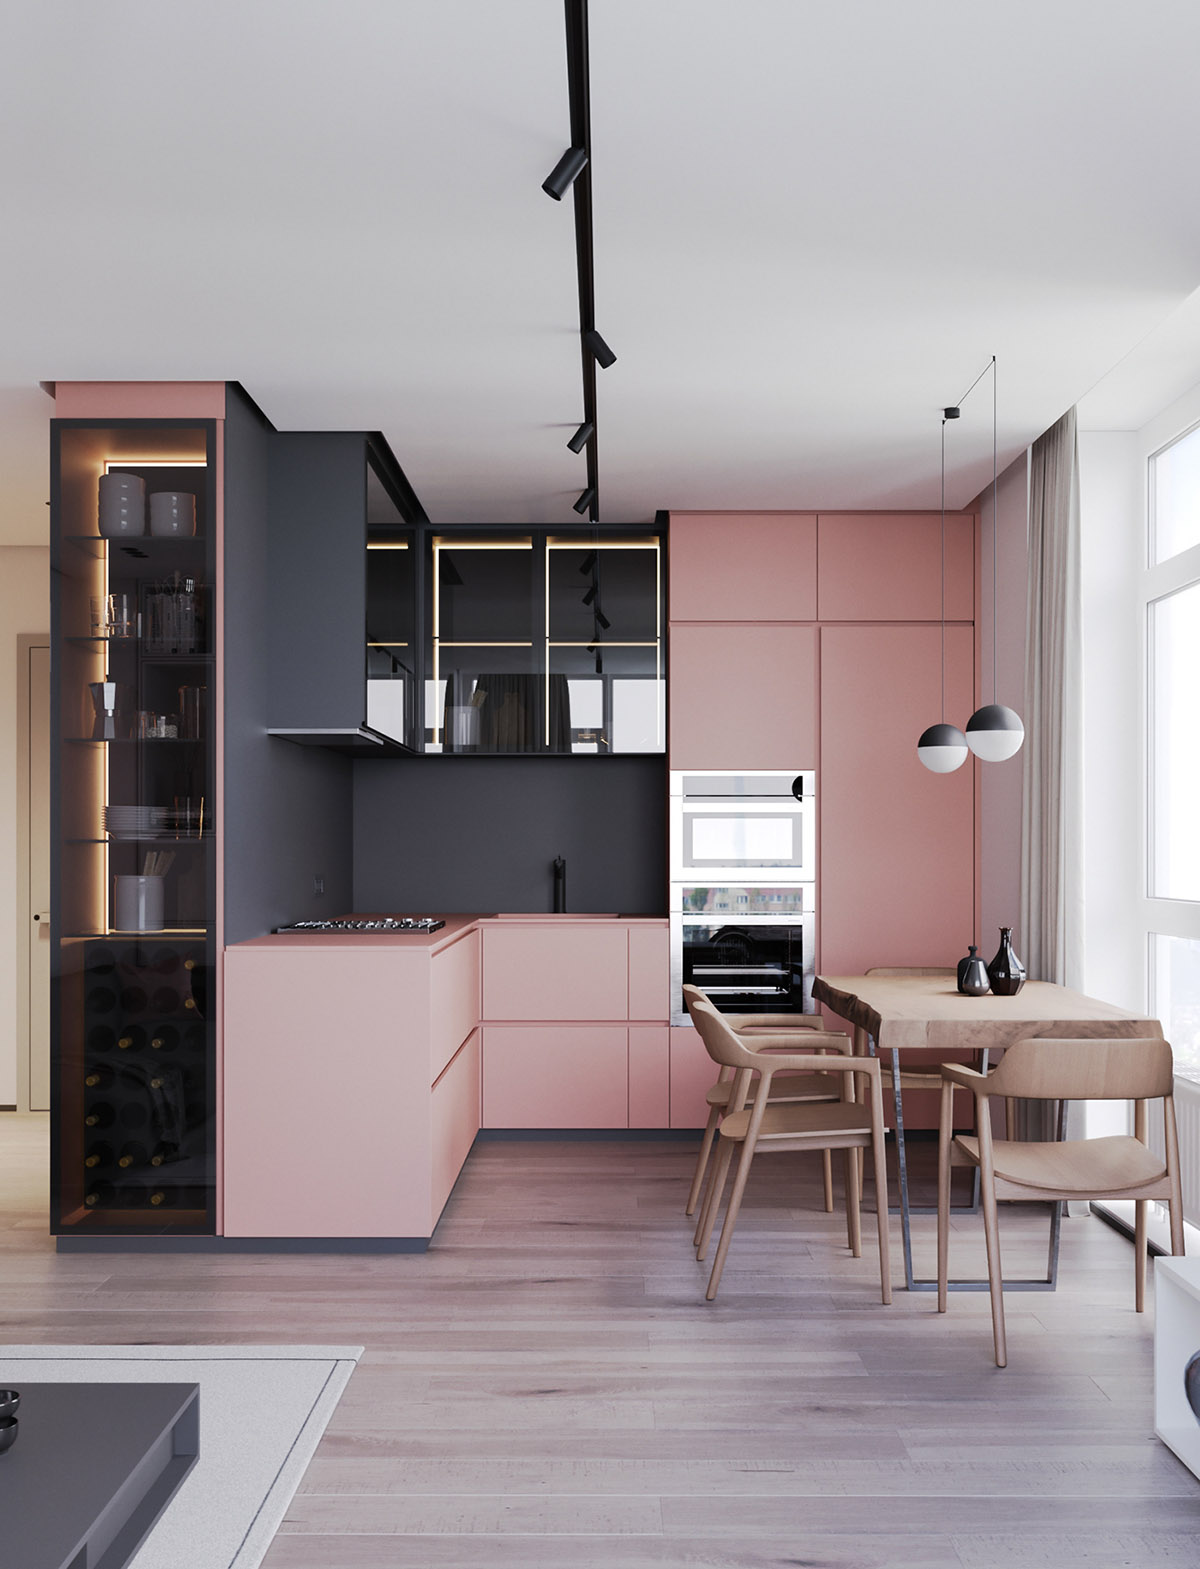 A Striking Example Of Interior Design Using Pink Amp Grey